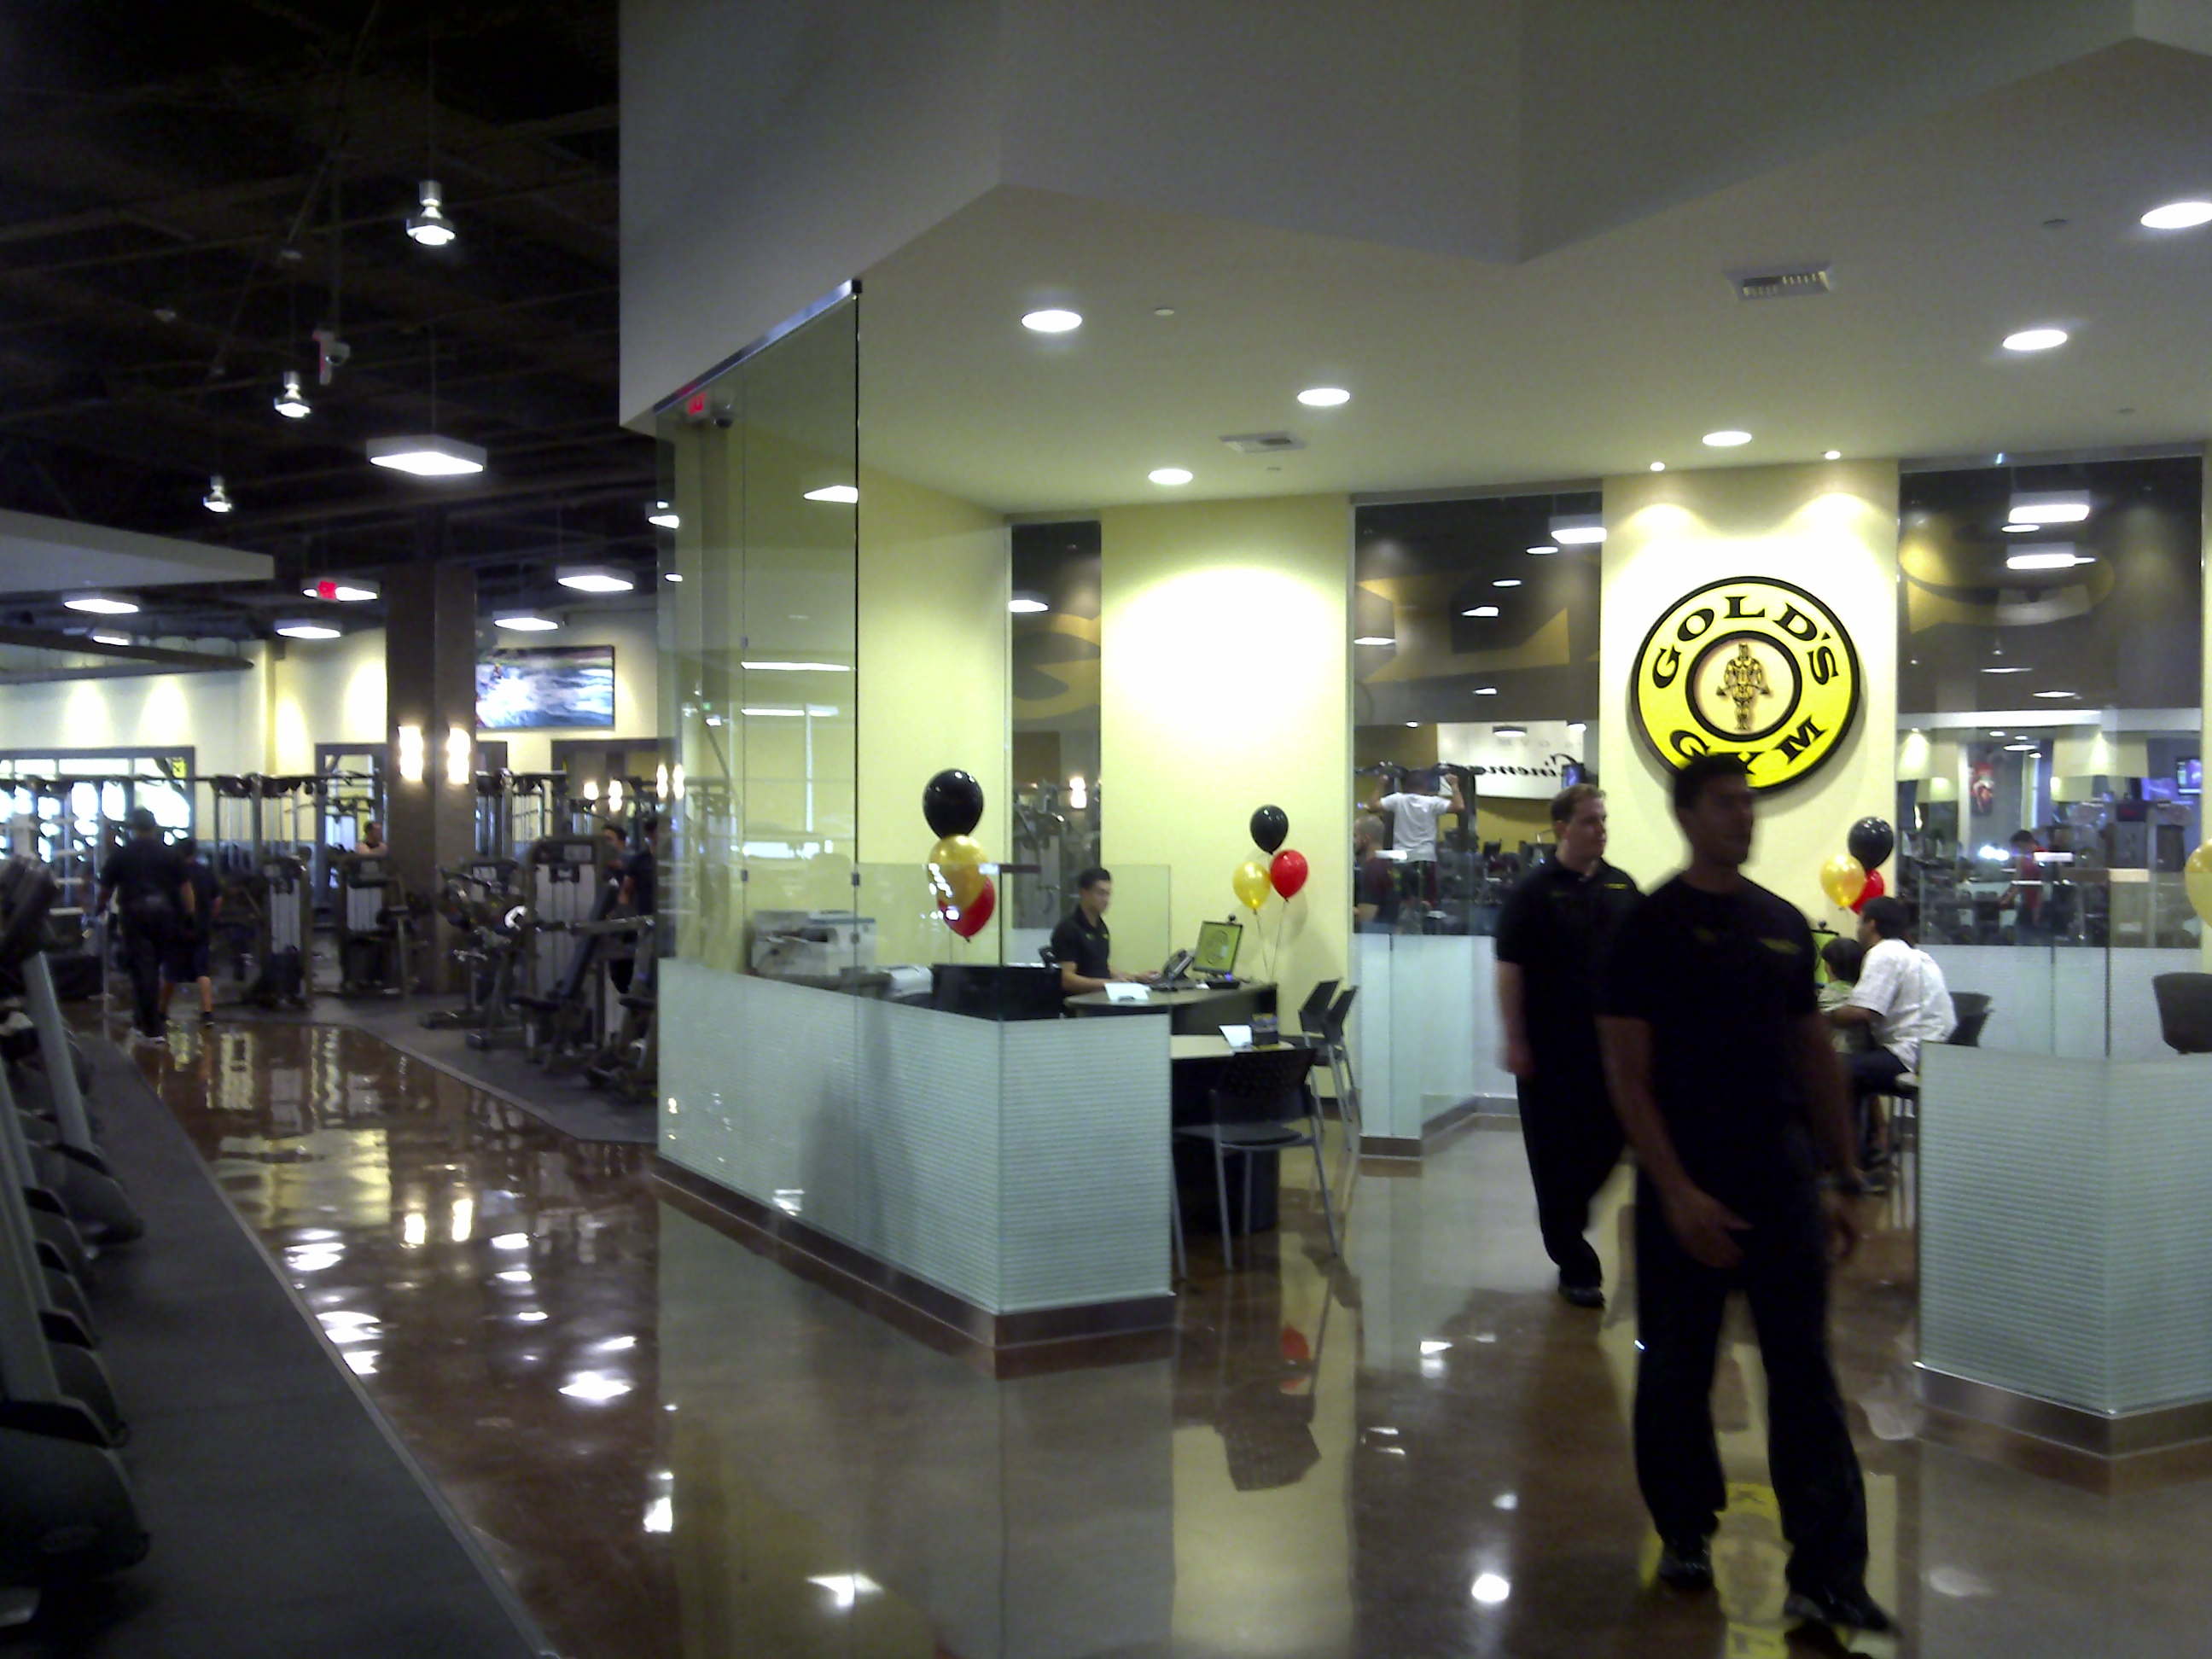 Gold'd Gym – West Covina, CA